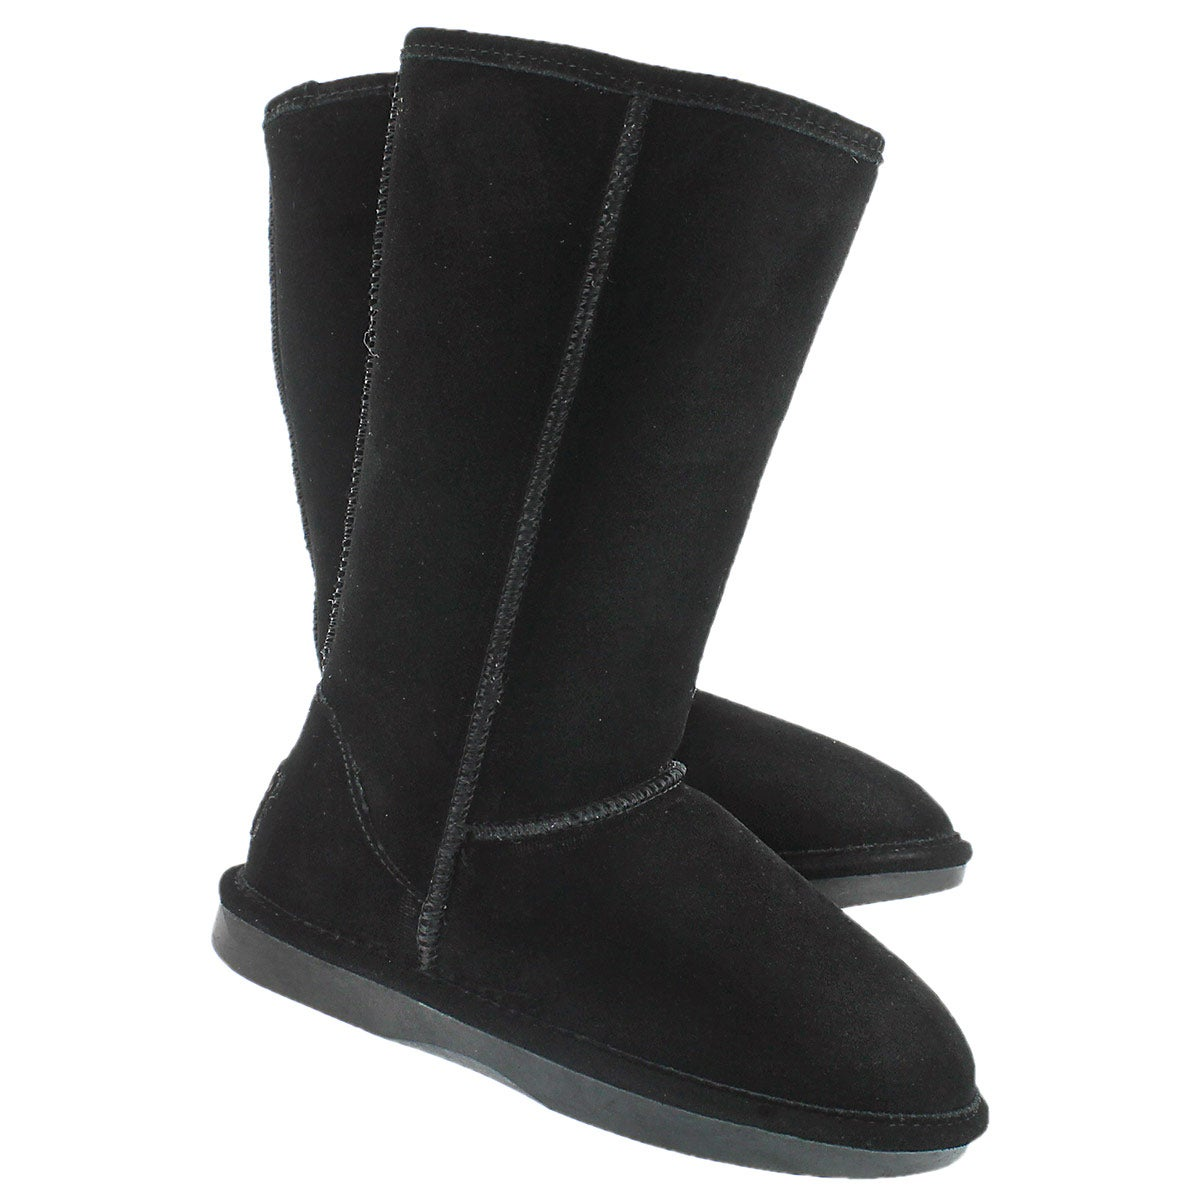 Lds Smocs 5 black tall suede boot